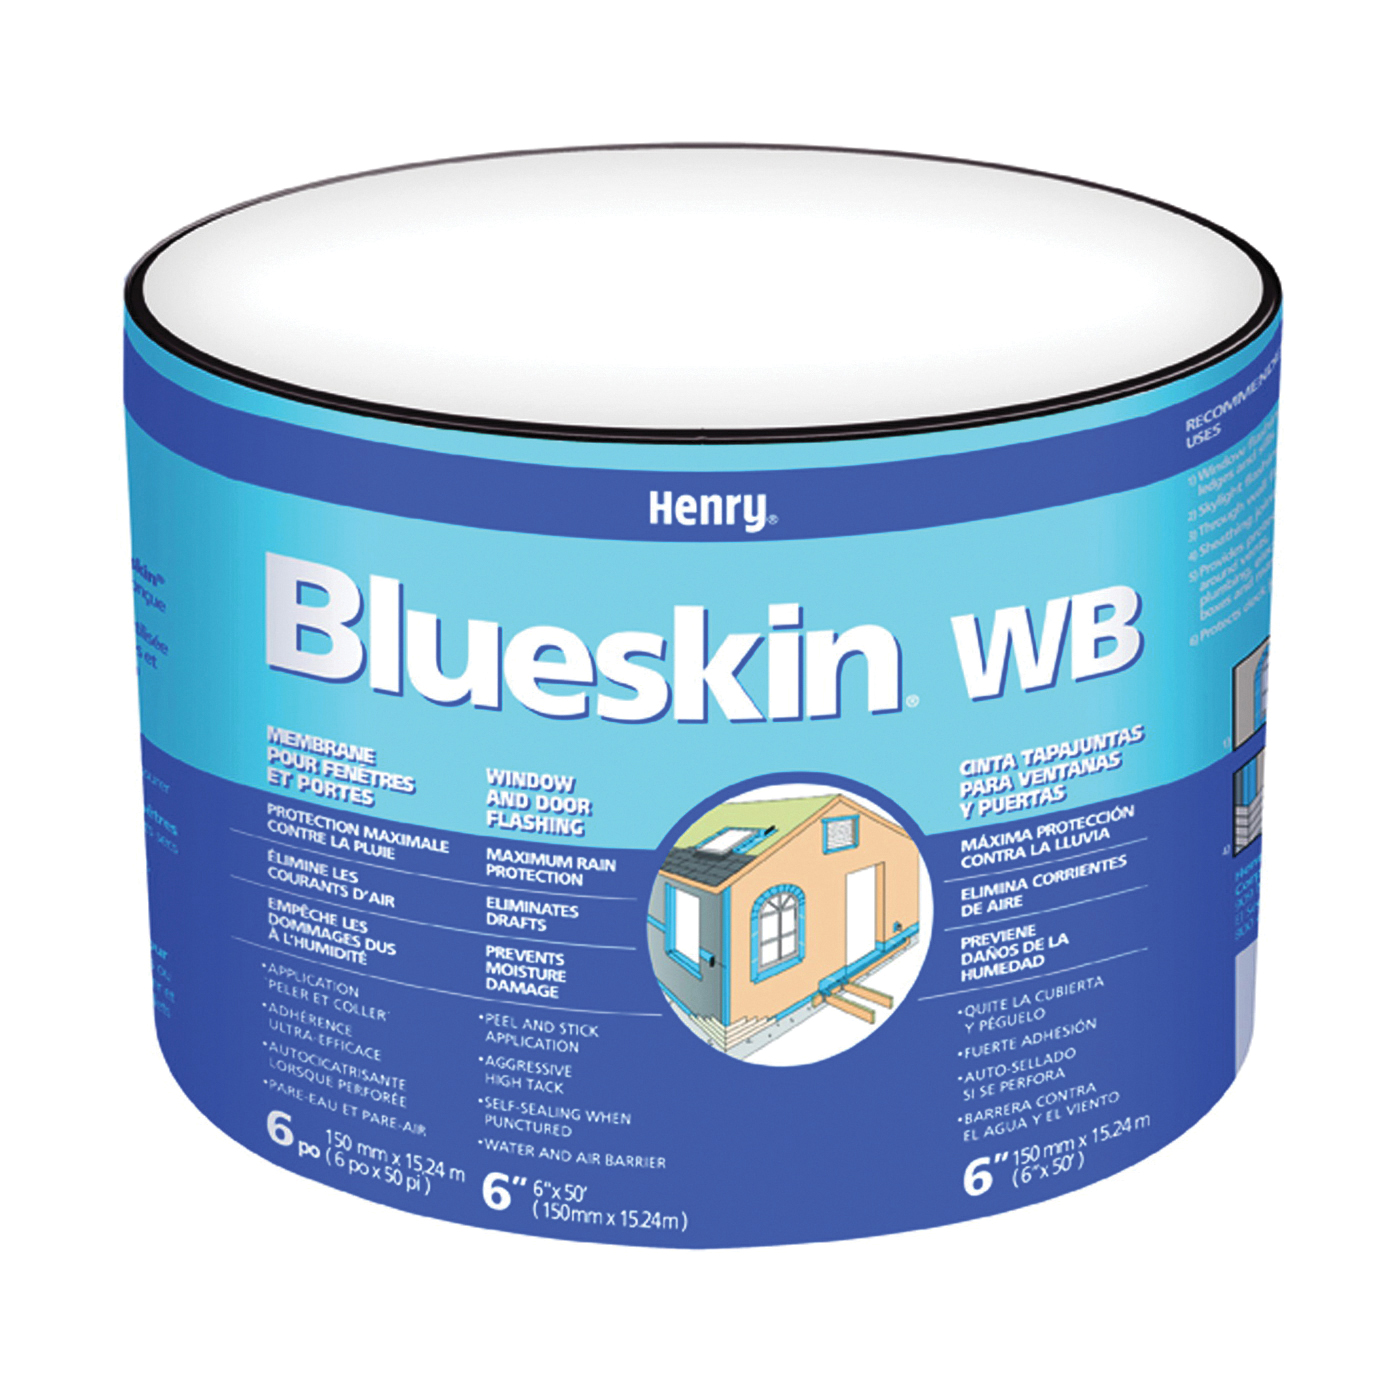 Picture of Henry Blueskin WB BH200WB4590 Window and Door Flashing, 50 ft L, 9 in W, Blue, Self Adhesive